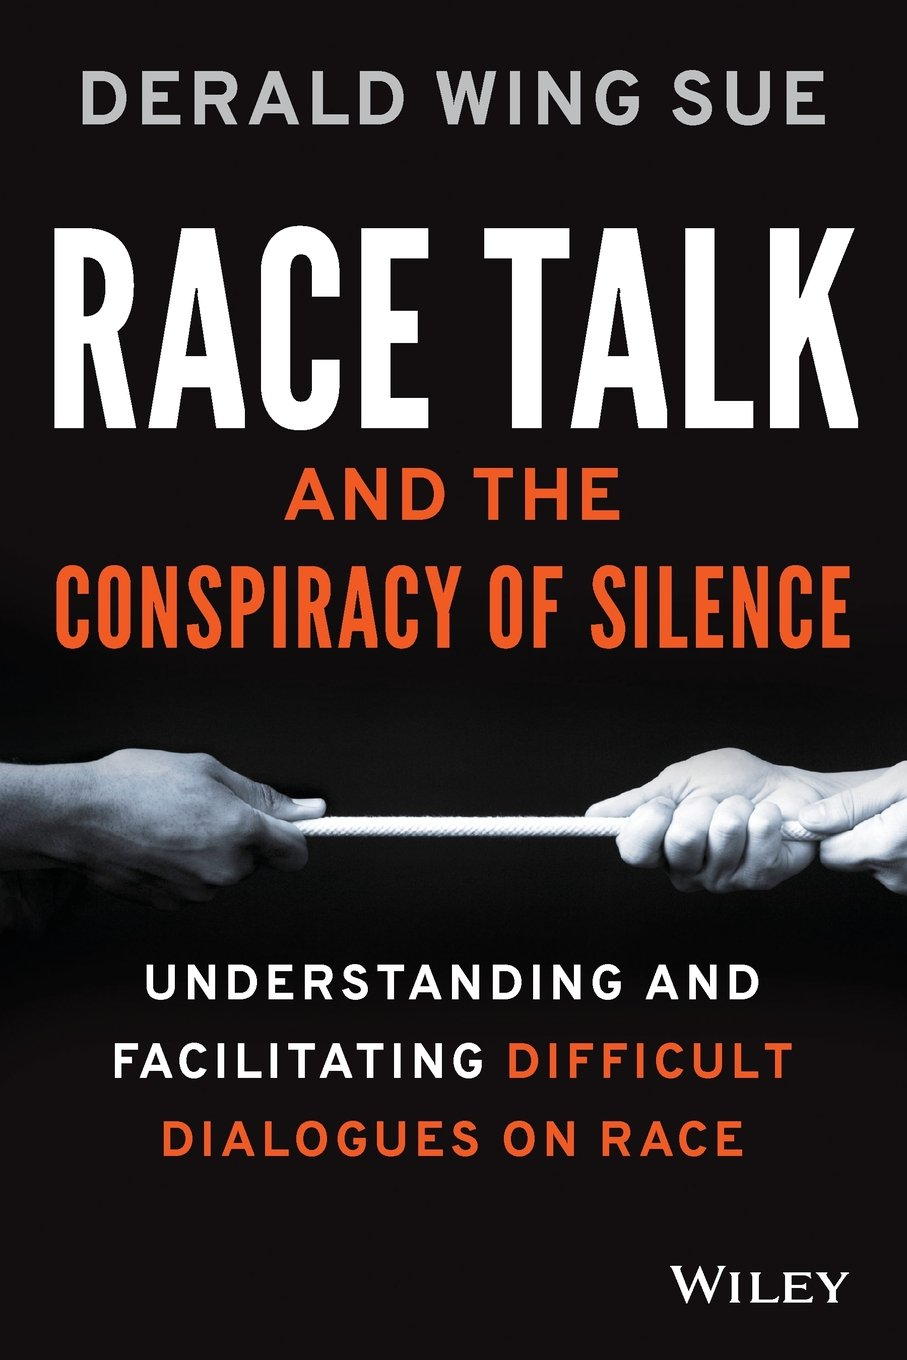 Race talk and the conspiracy of silence book cover